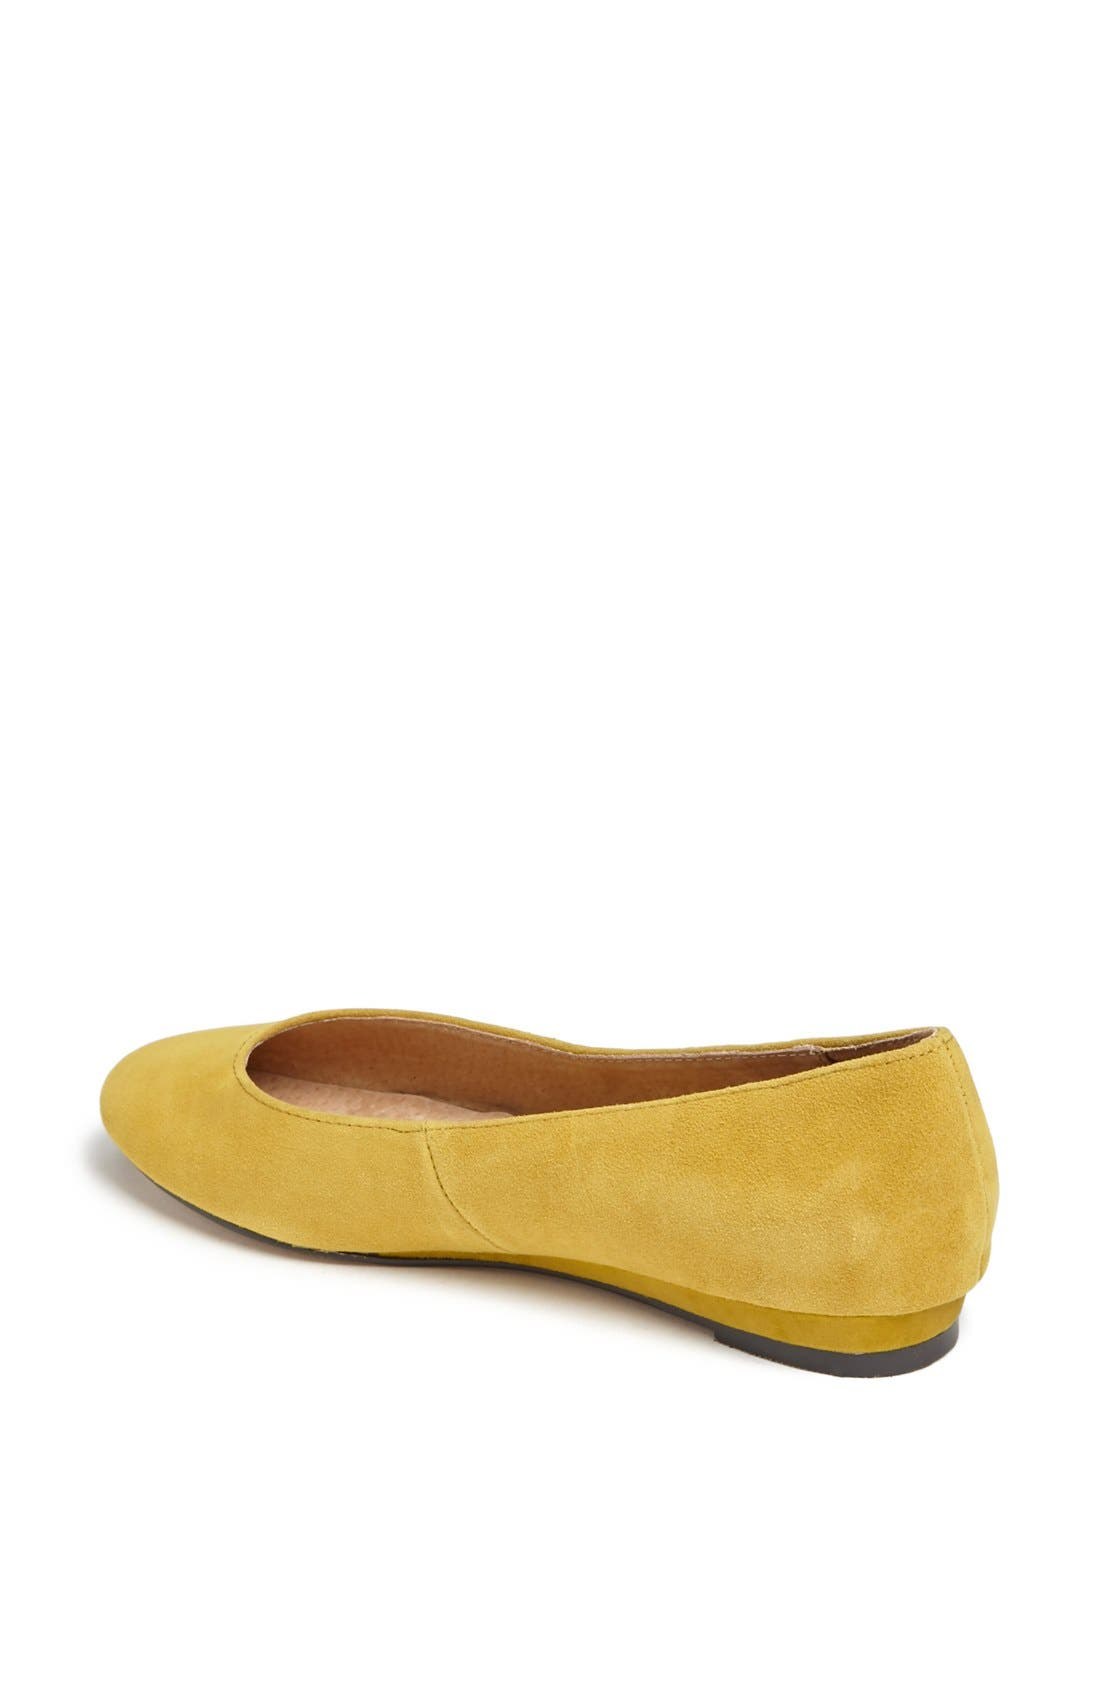 Alternate Image 2  - Topshop 'Mello Mini Wedge' Court Shoe